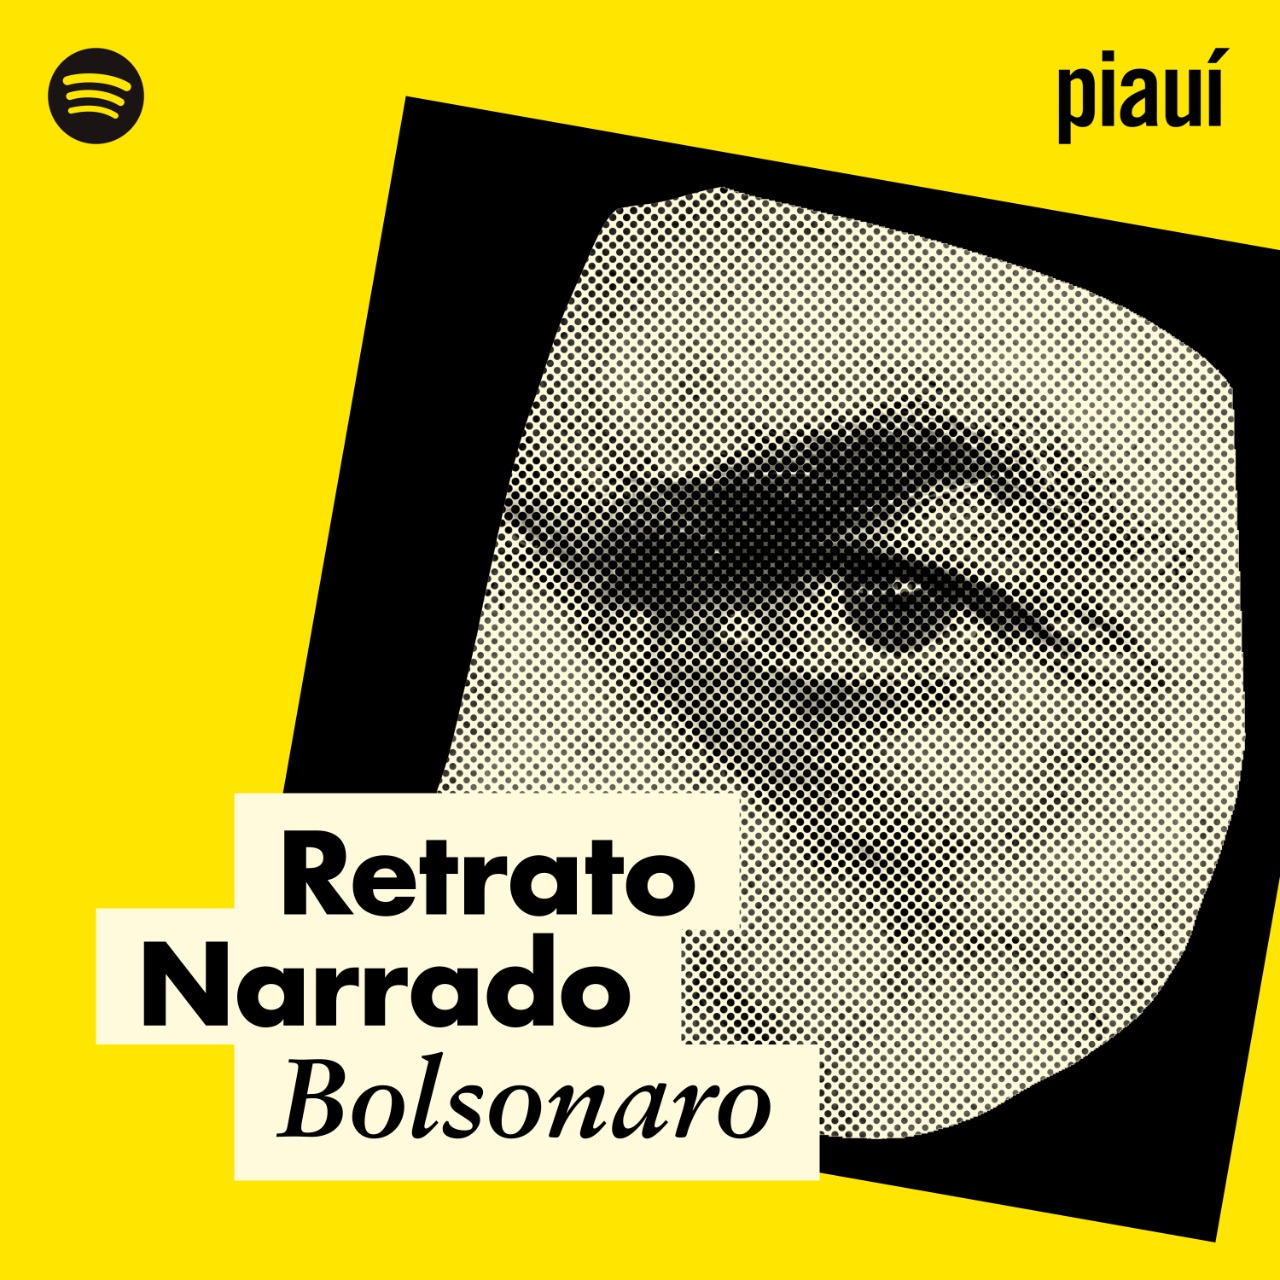 Ouça o trailer do novo podcast do Spotify e da revista piauí